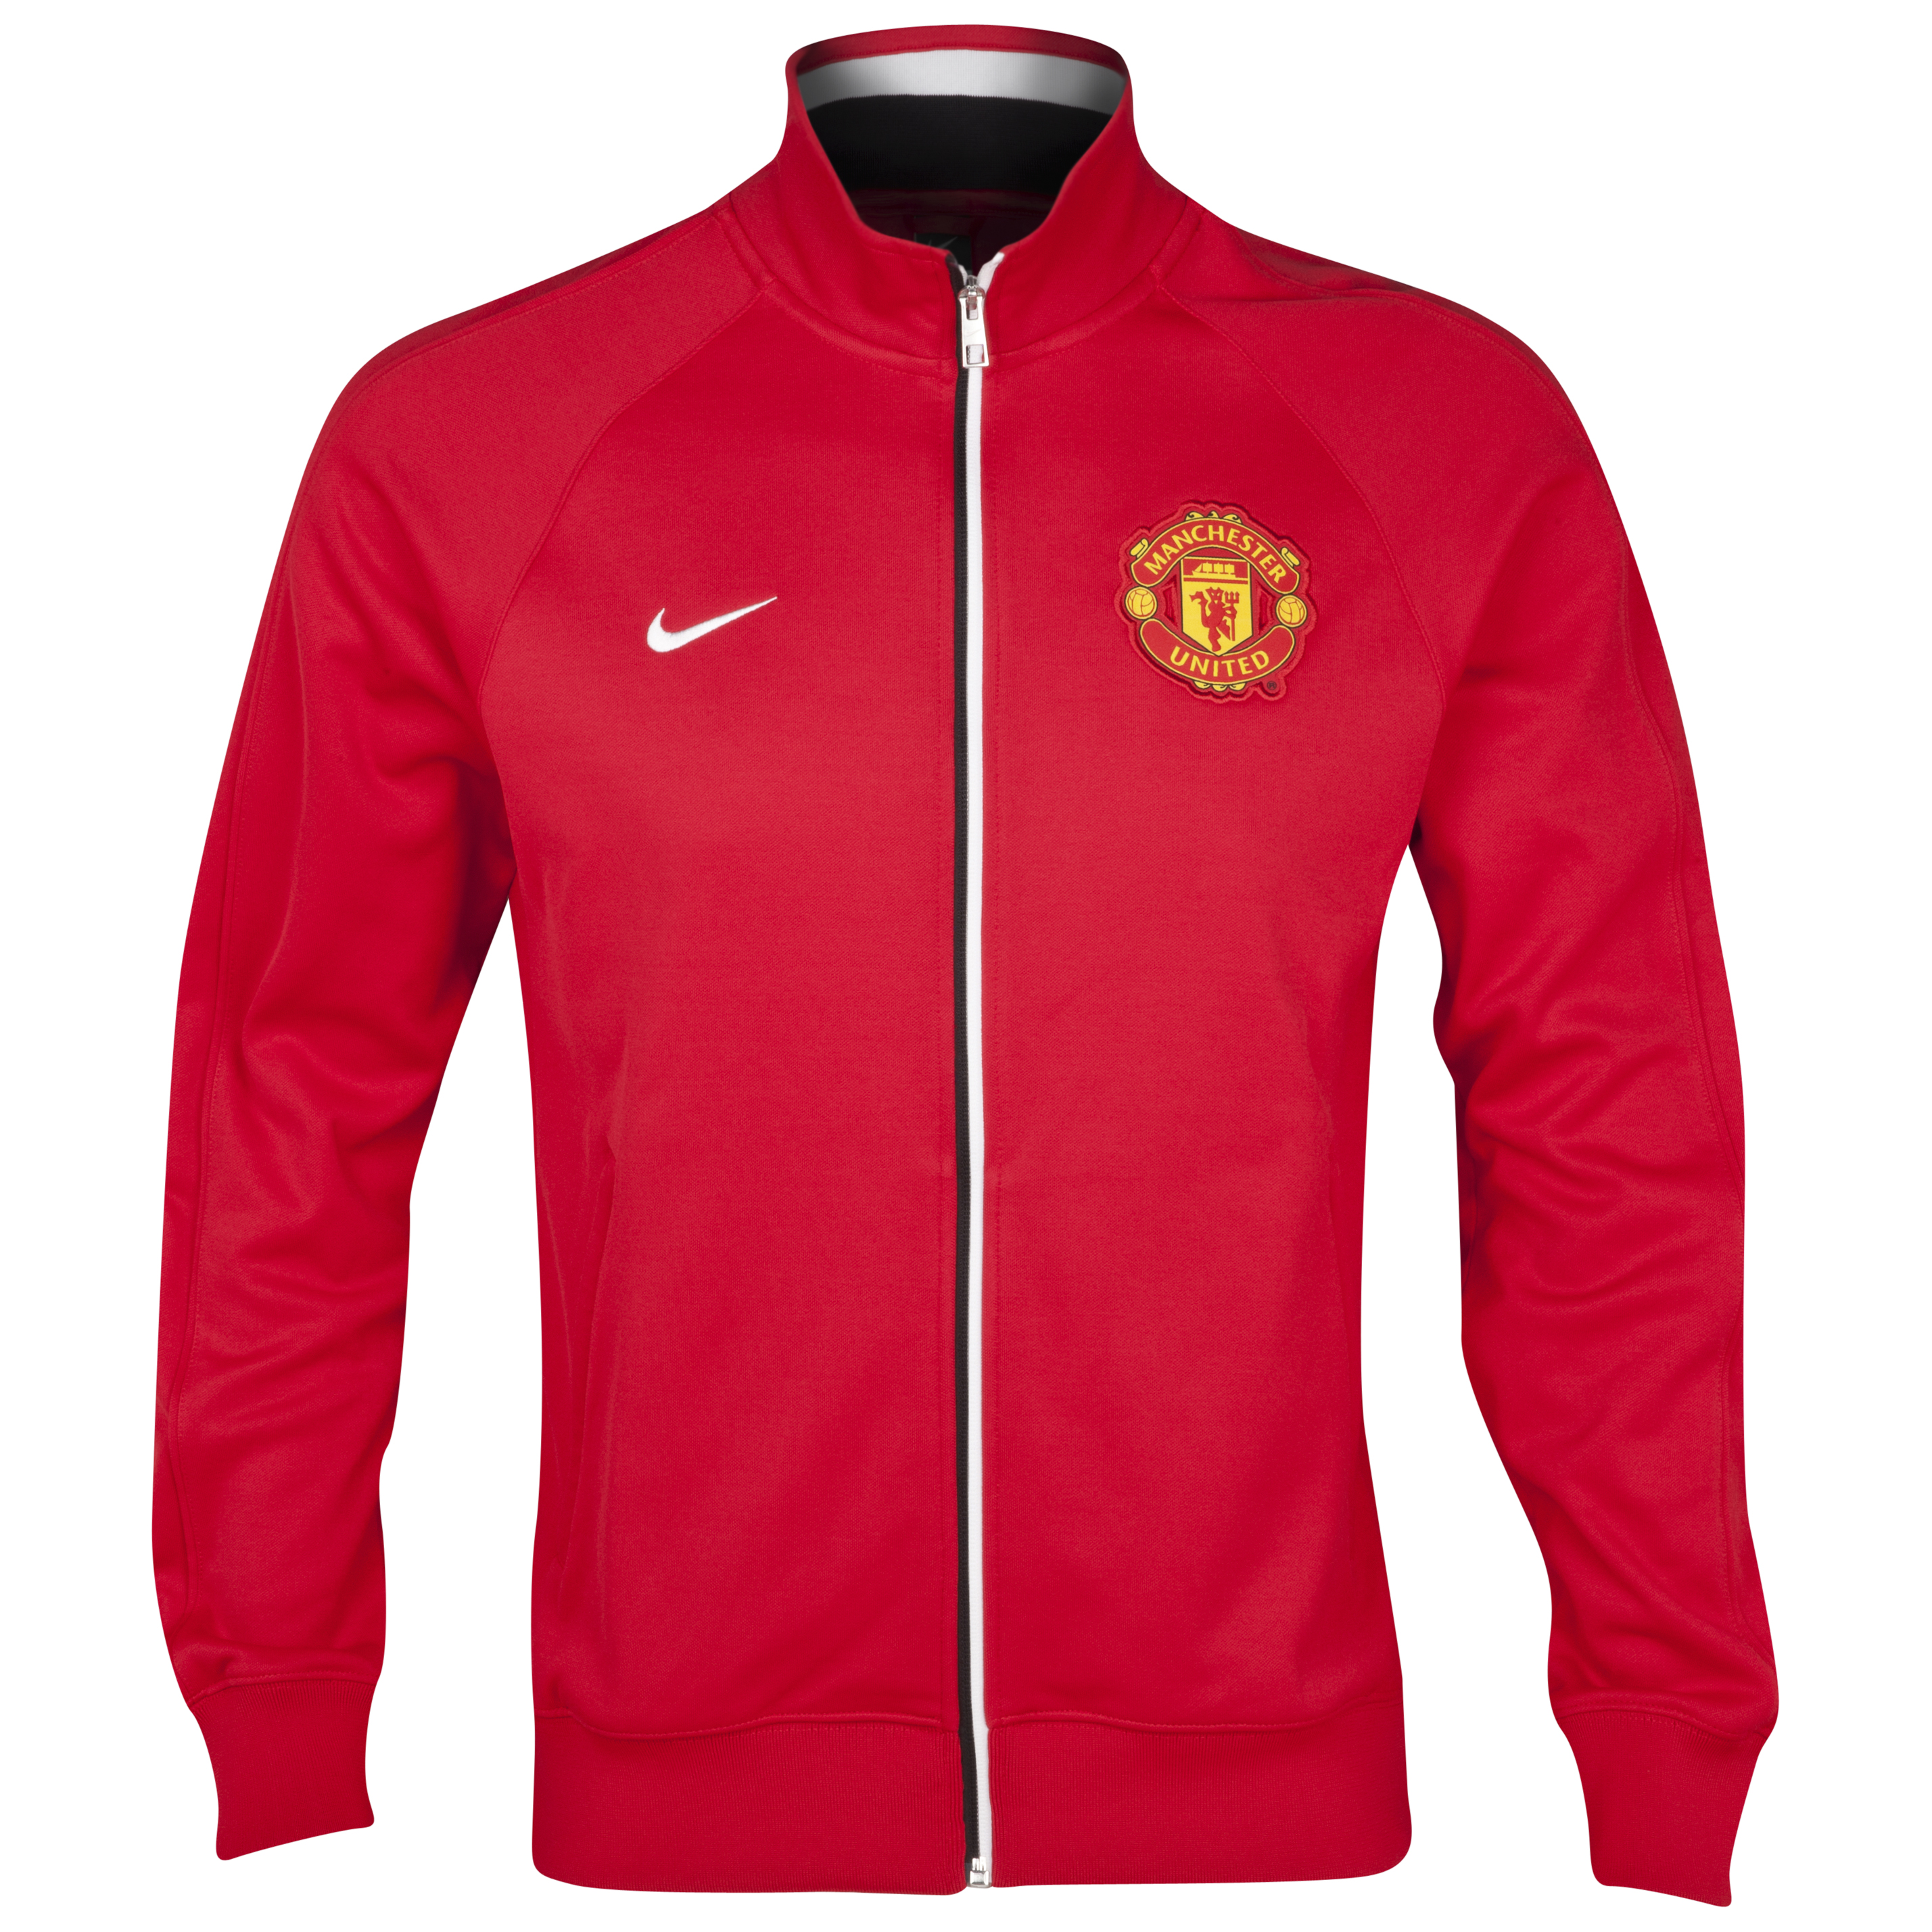 Manchester United Core Trainer Jacket - Diablo Red/Diablo Red/White